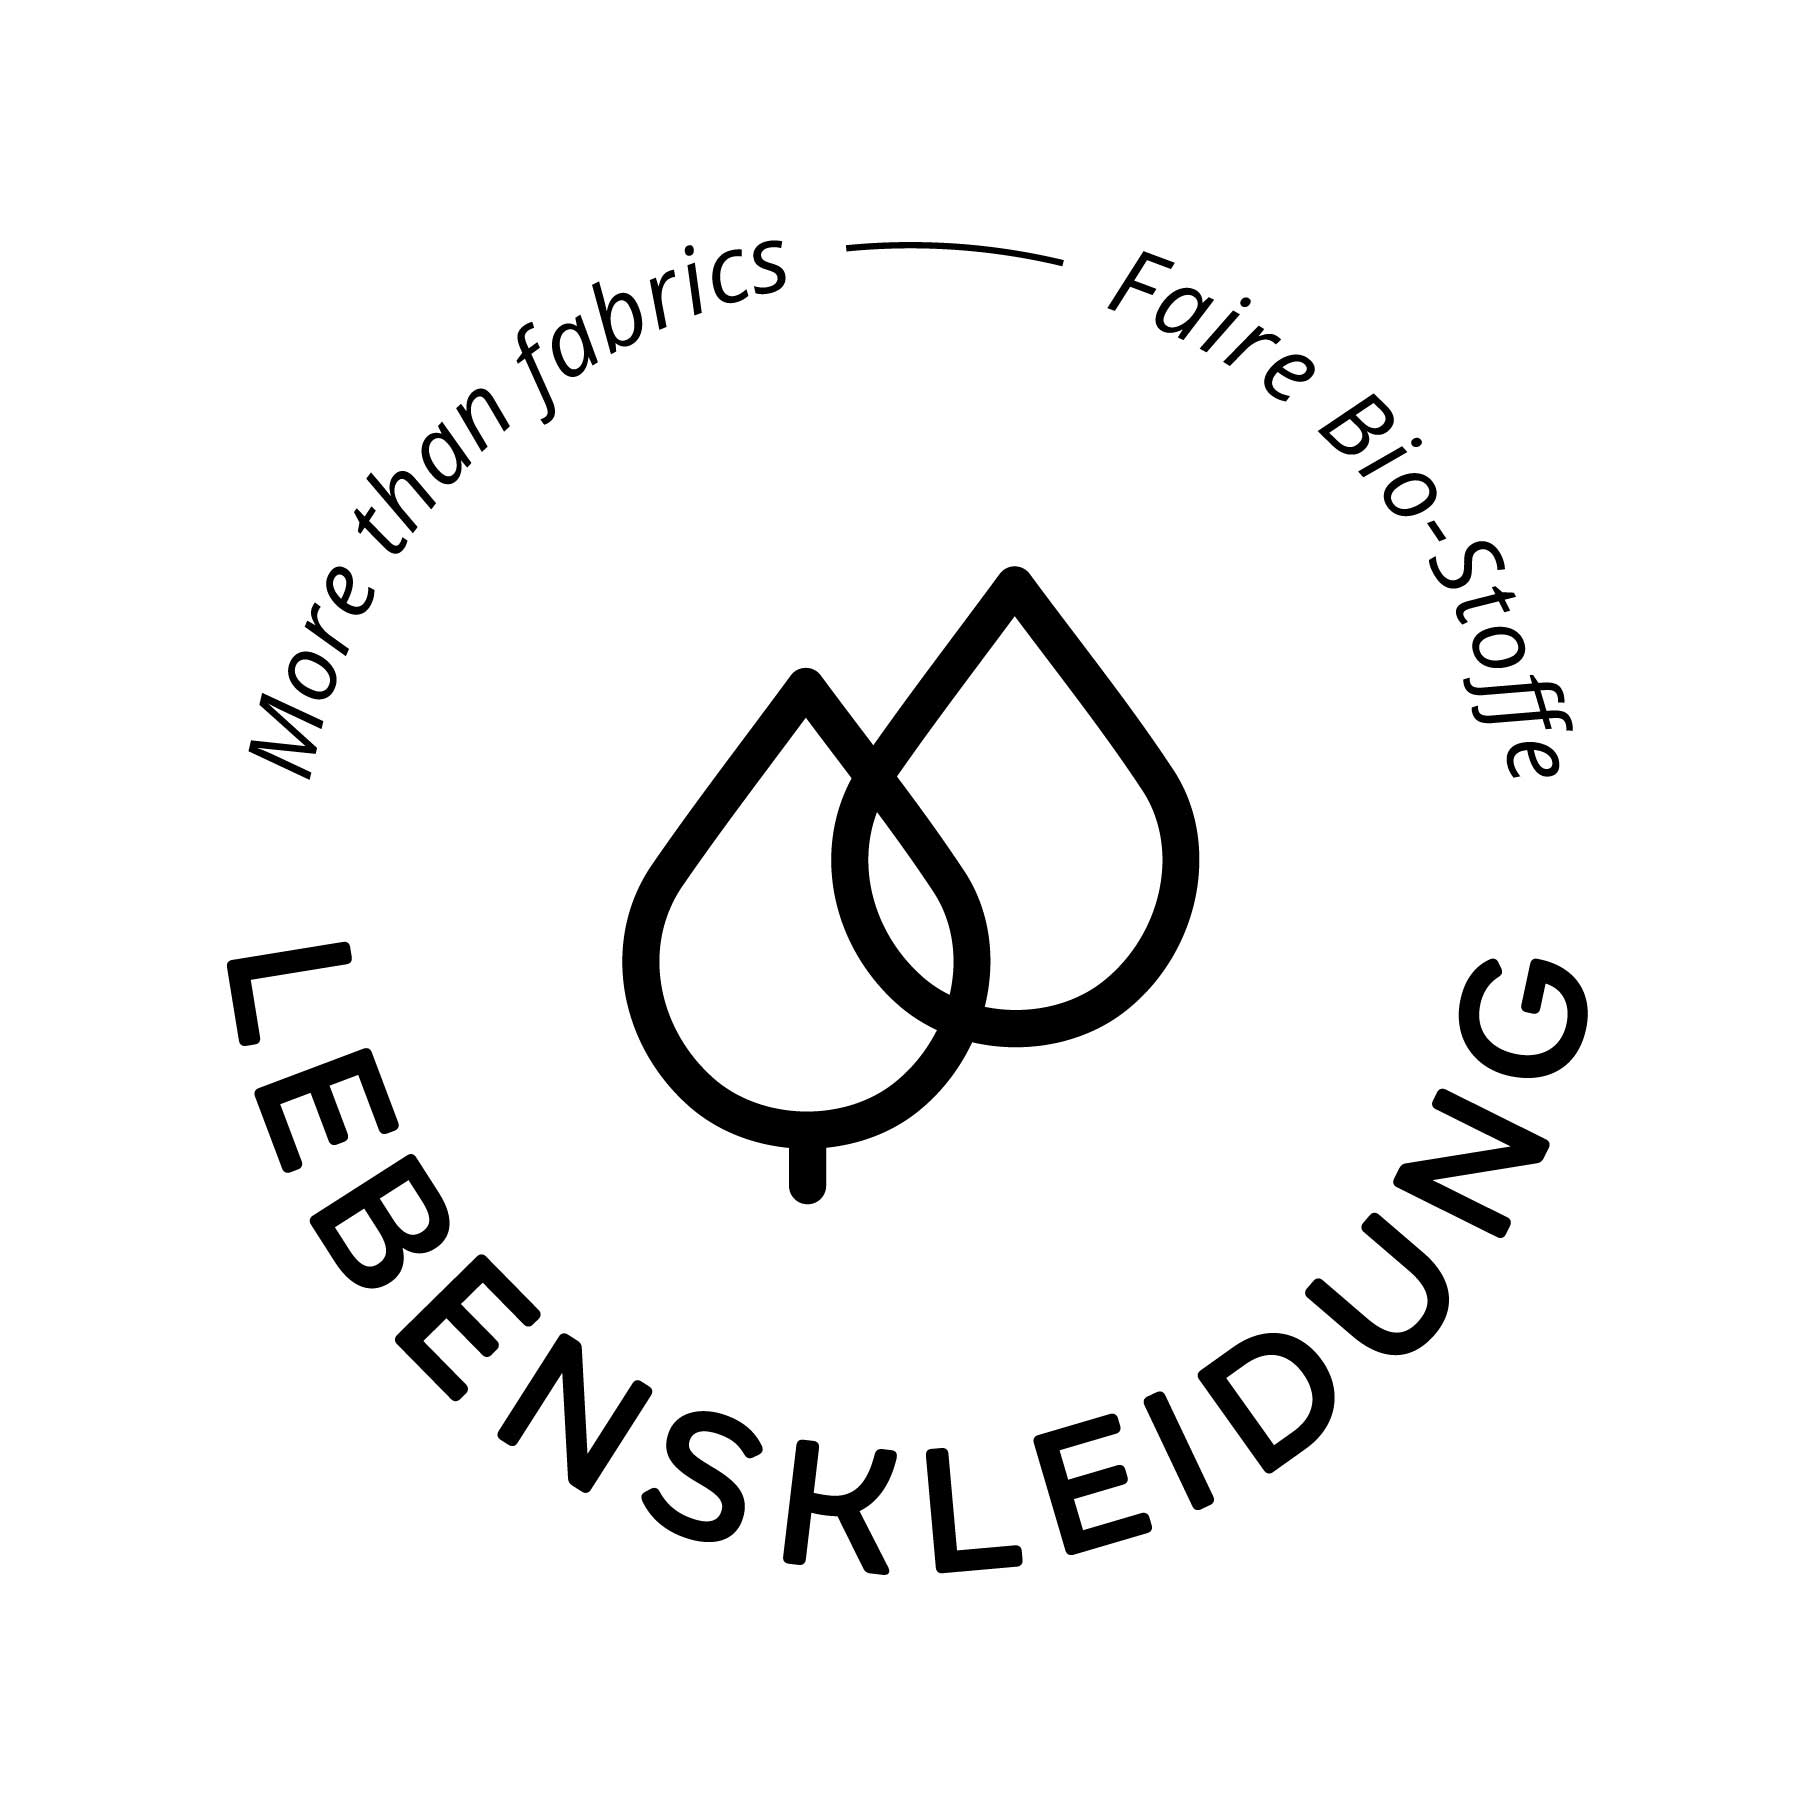 Organic Stretch Jersey fabric - White without optical brighteners